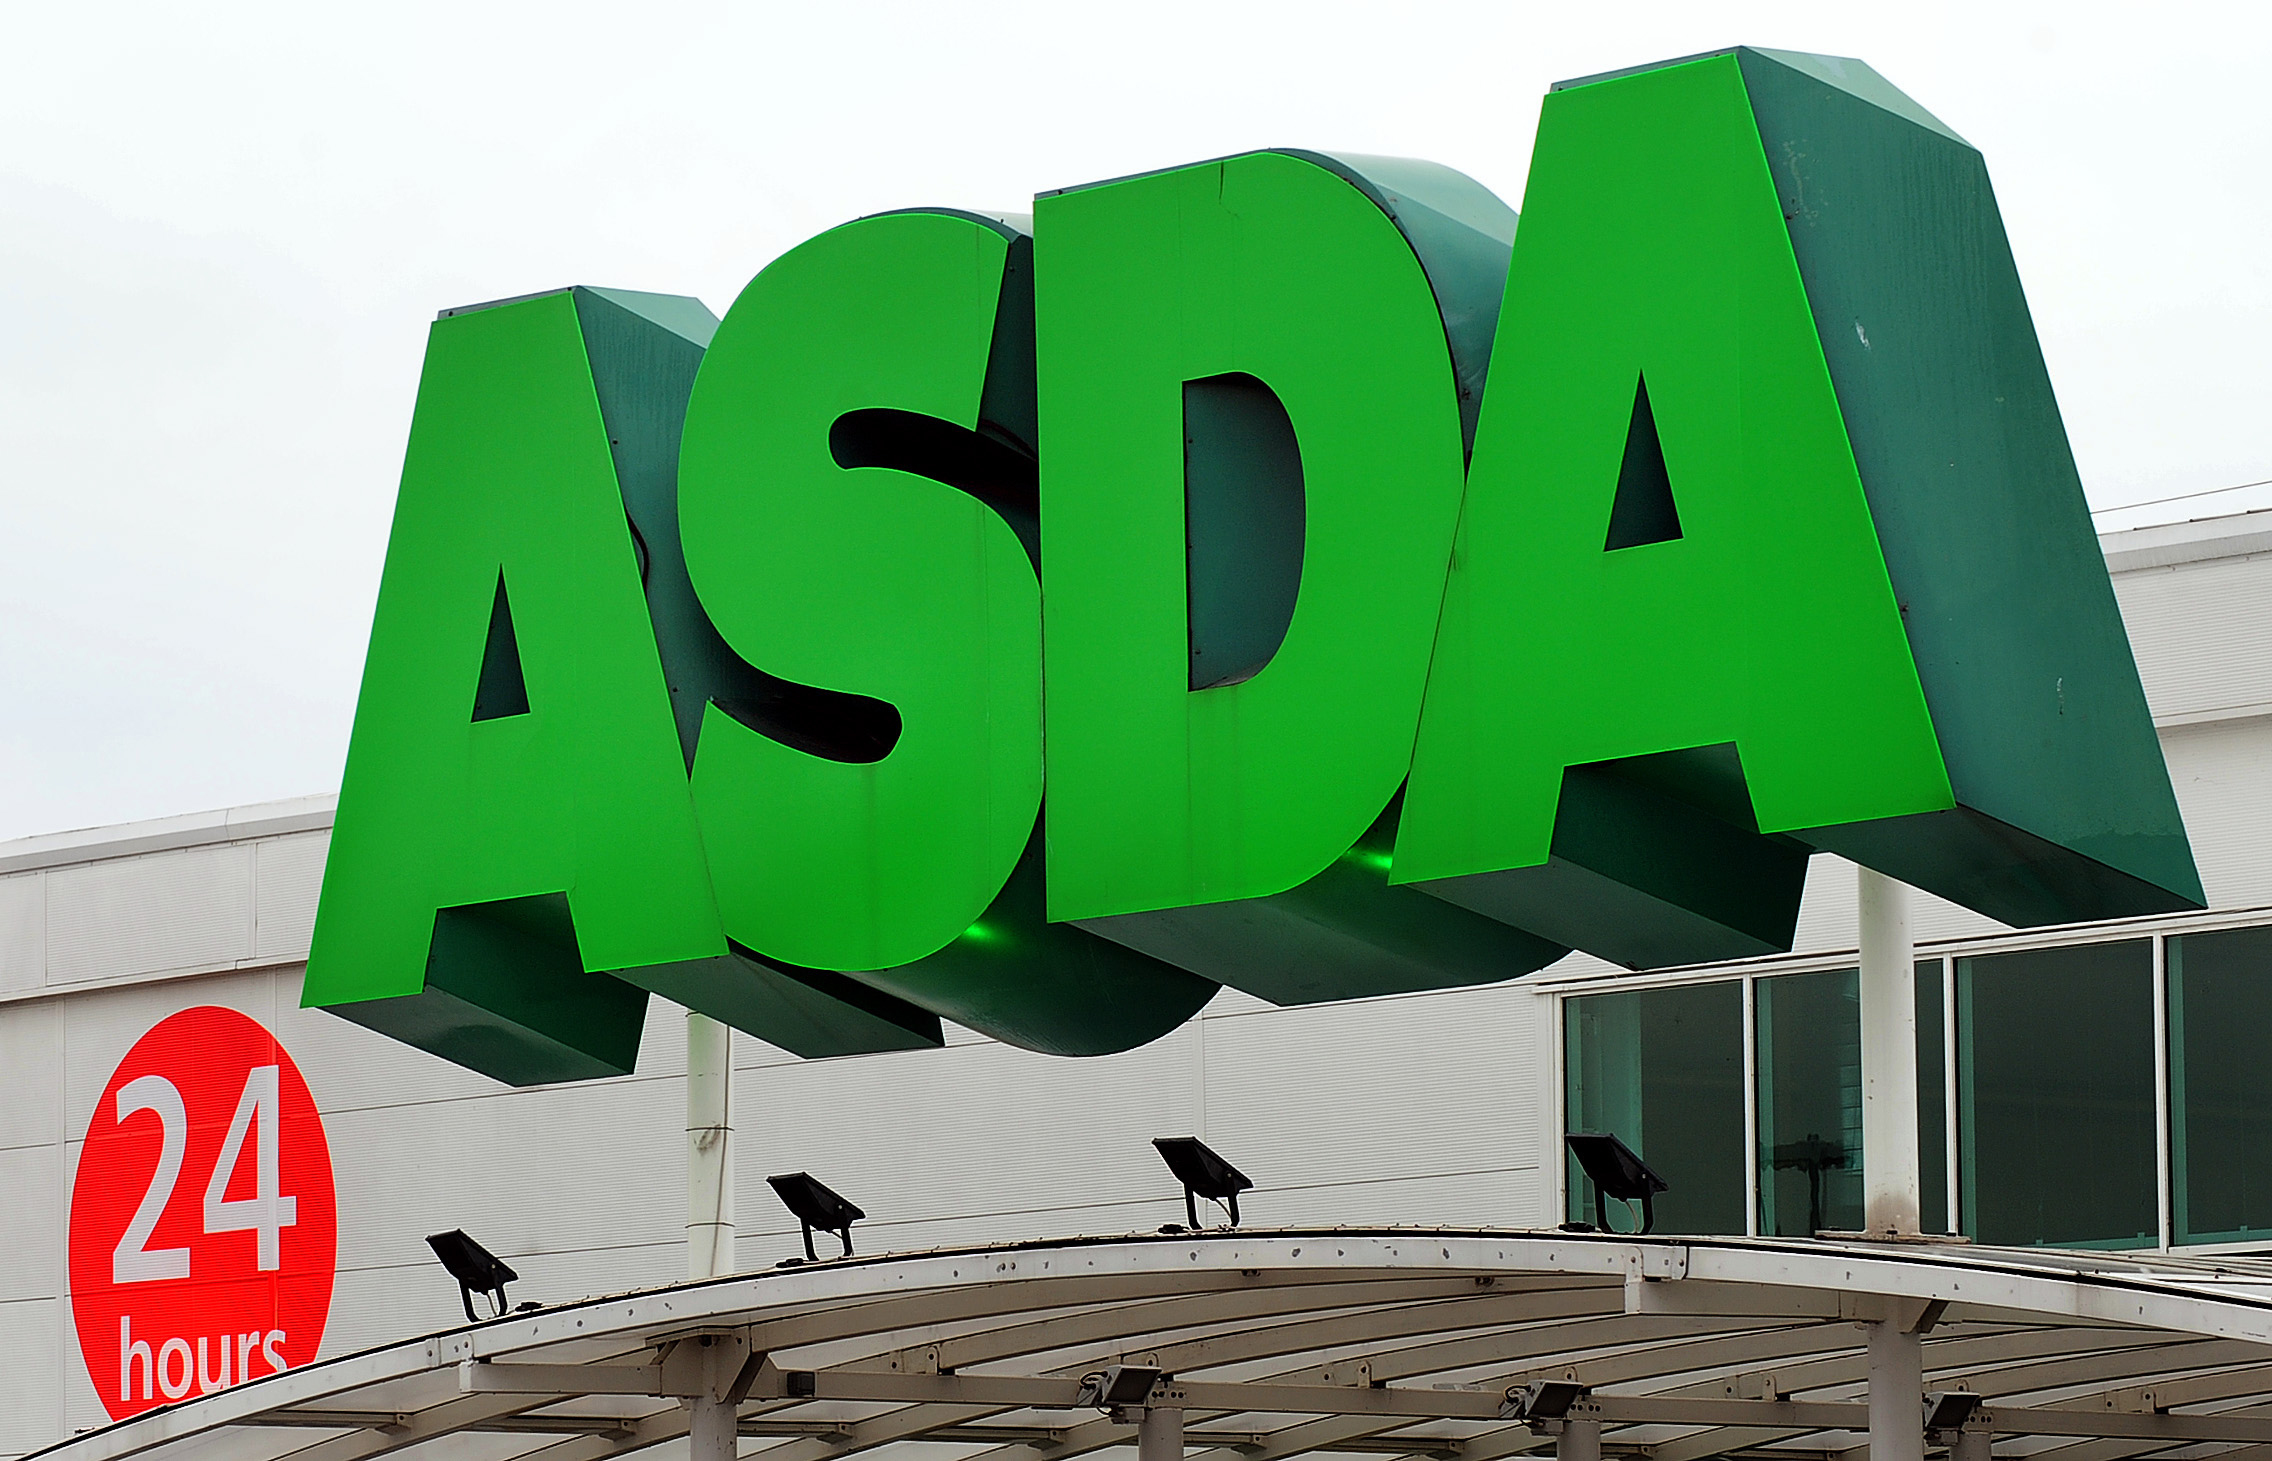 Asda customers had trouble accessing the supermarket's website and app